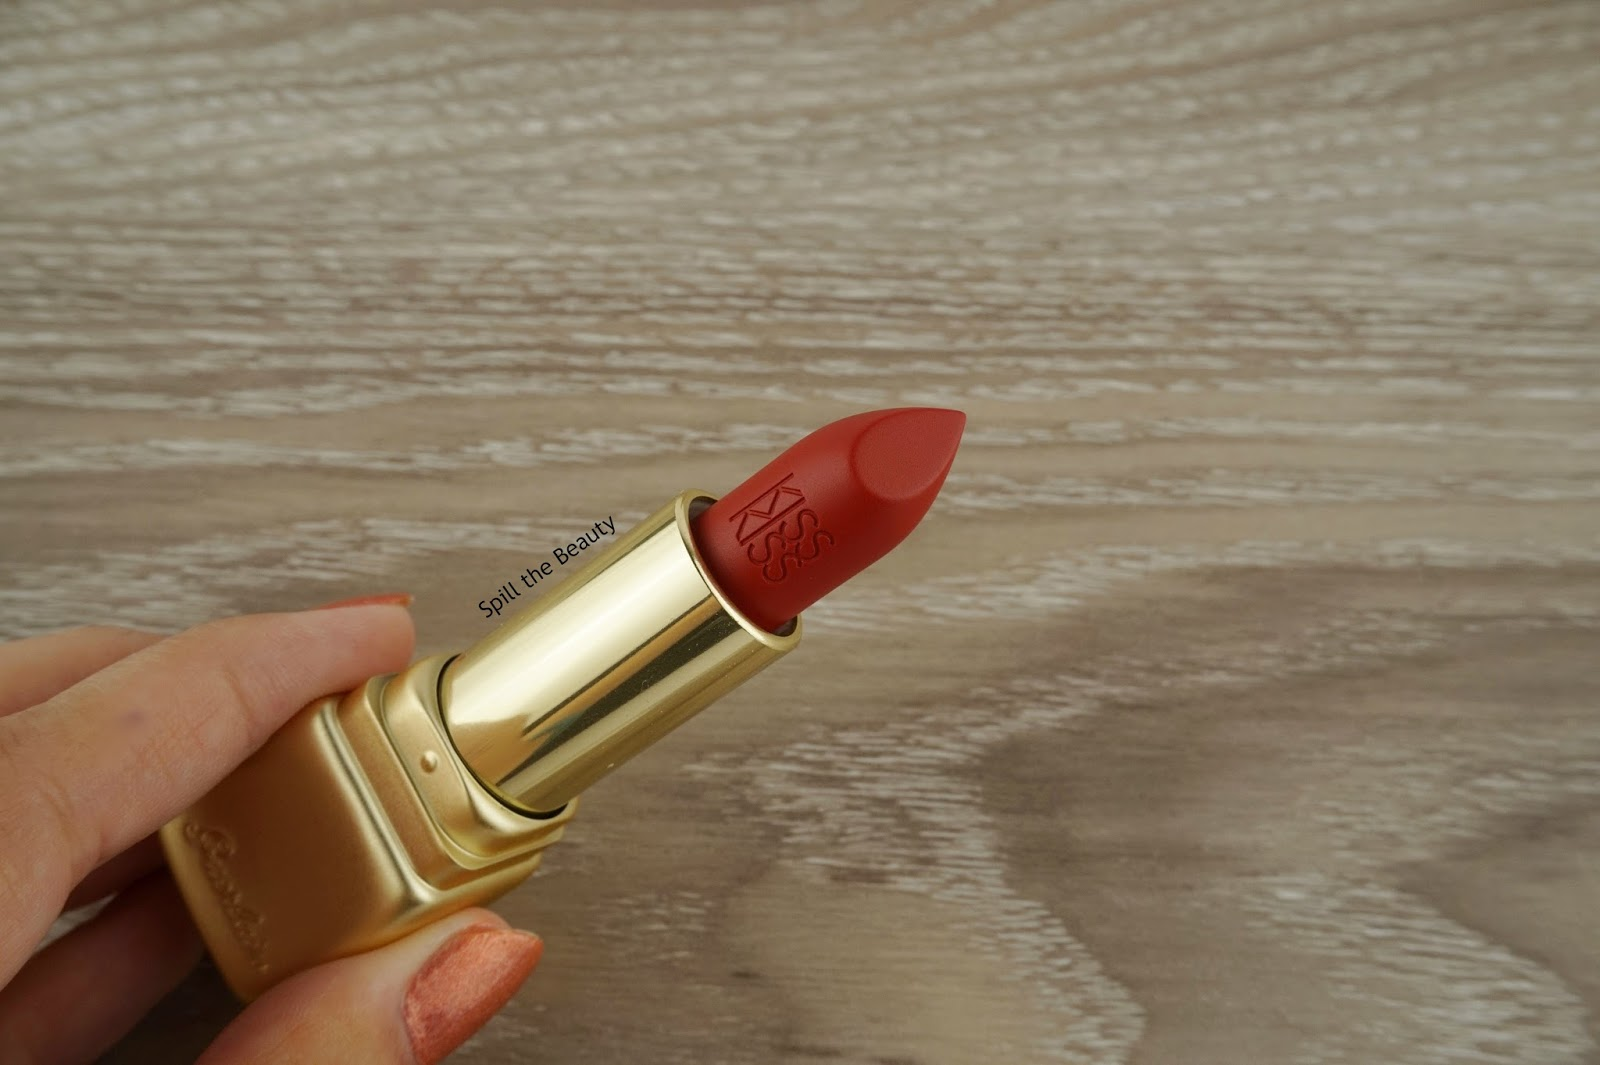 guerlain kiss kiss matte lipstick spicy burgundy swatches comparison dupe